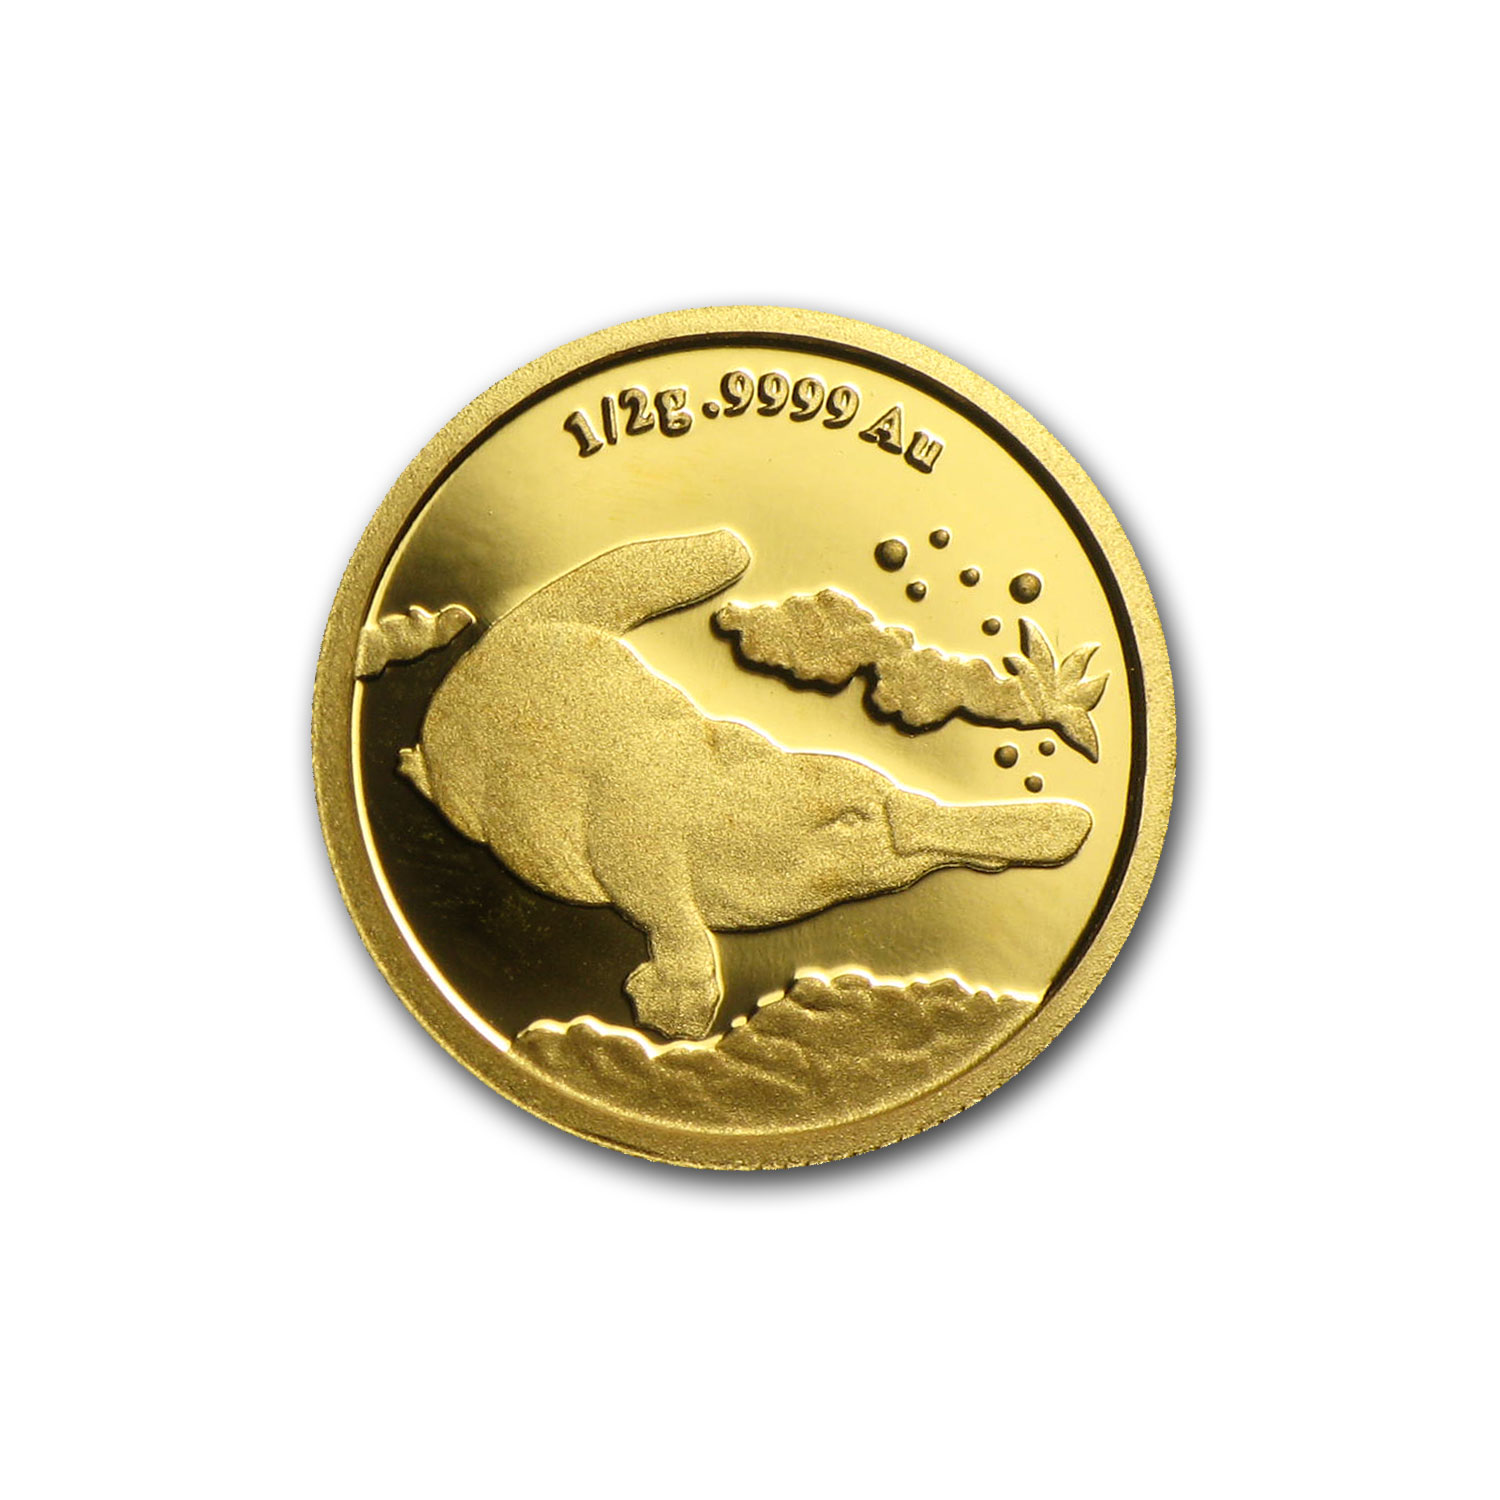 2014 Australia 1/2 gram Proof Gold $2 Platypus